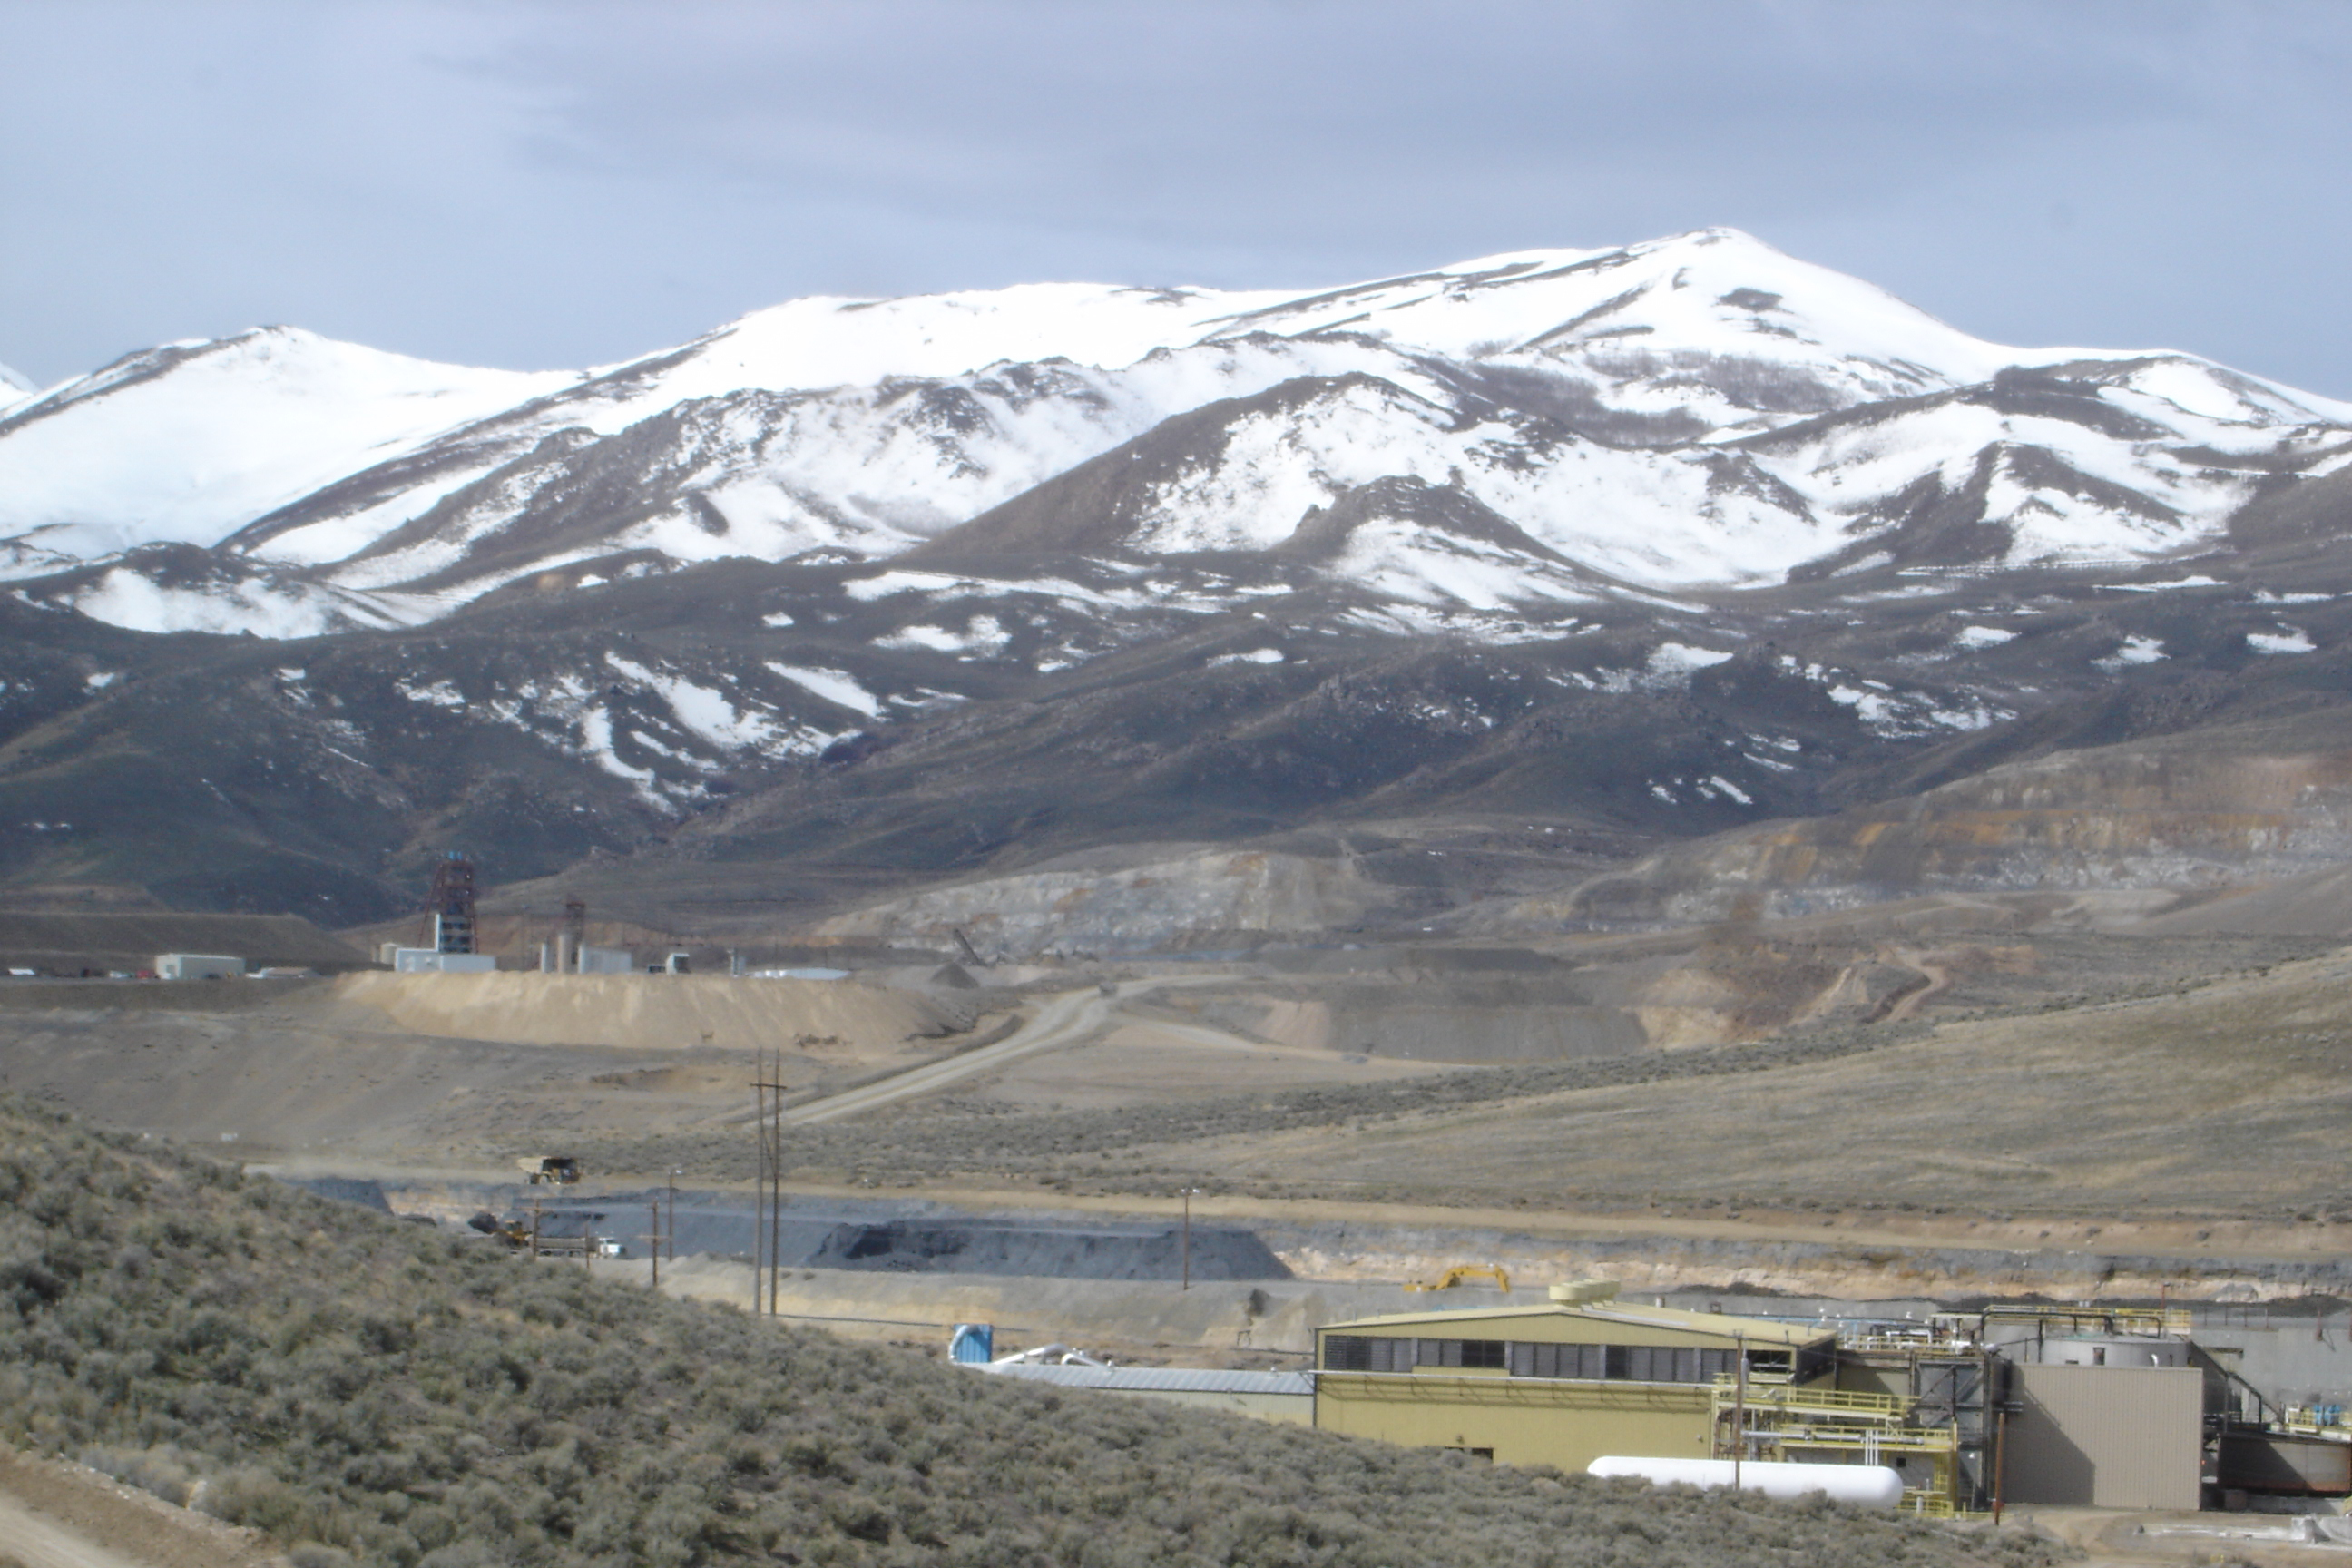 Snow covered mountains behind a mining operation.